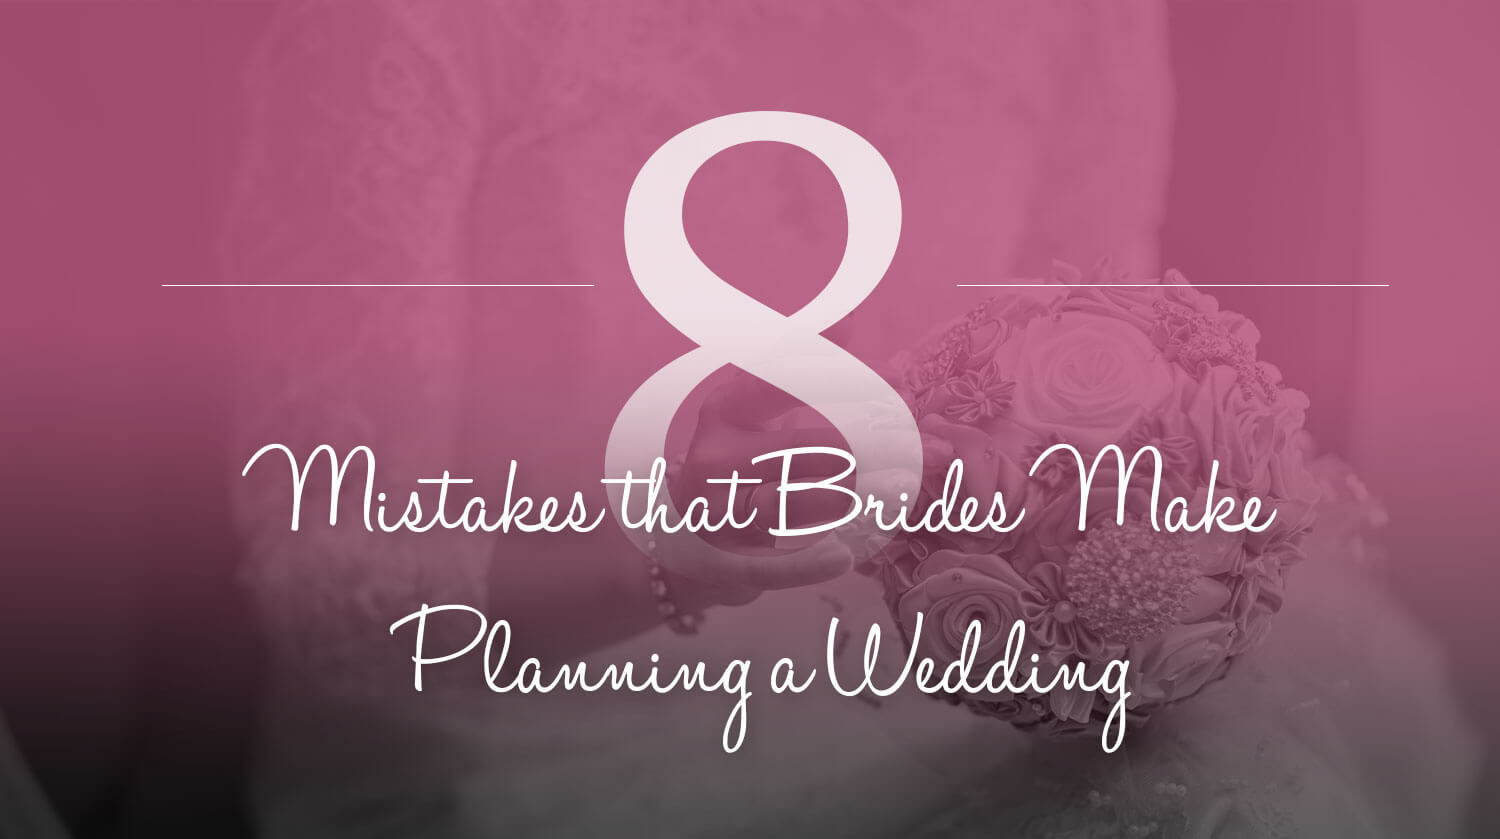 8 mistakes brides make when planning a wedding